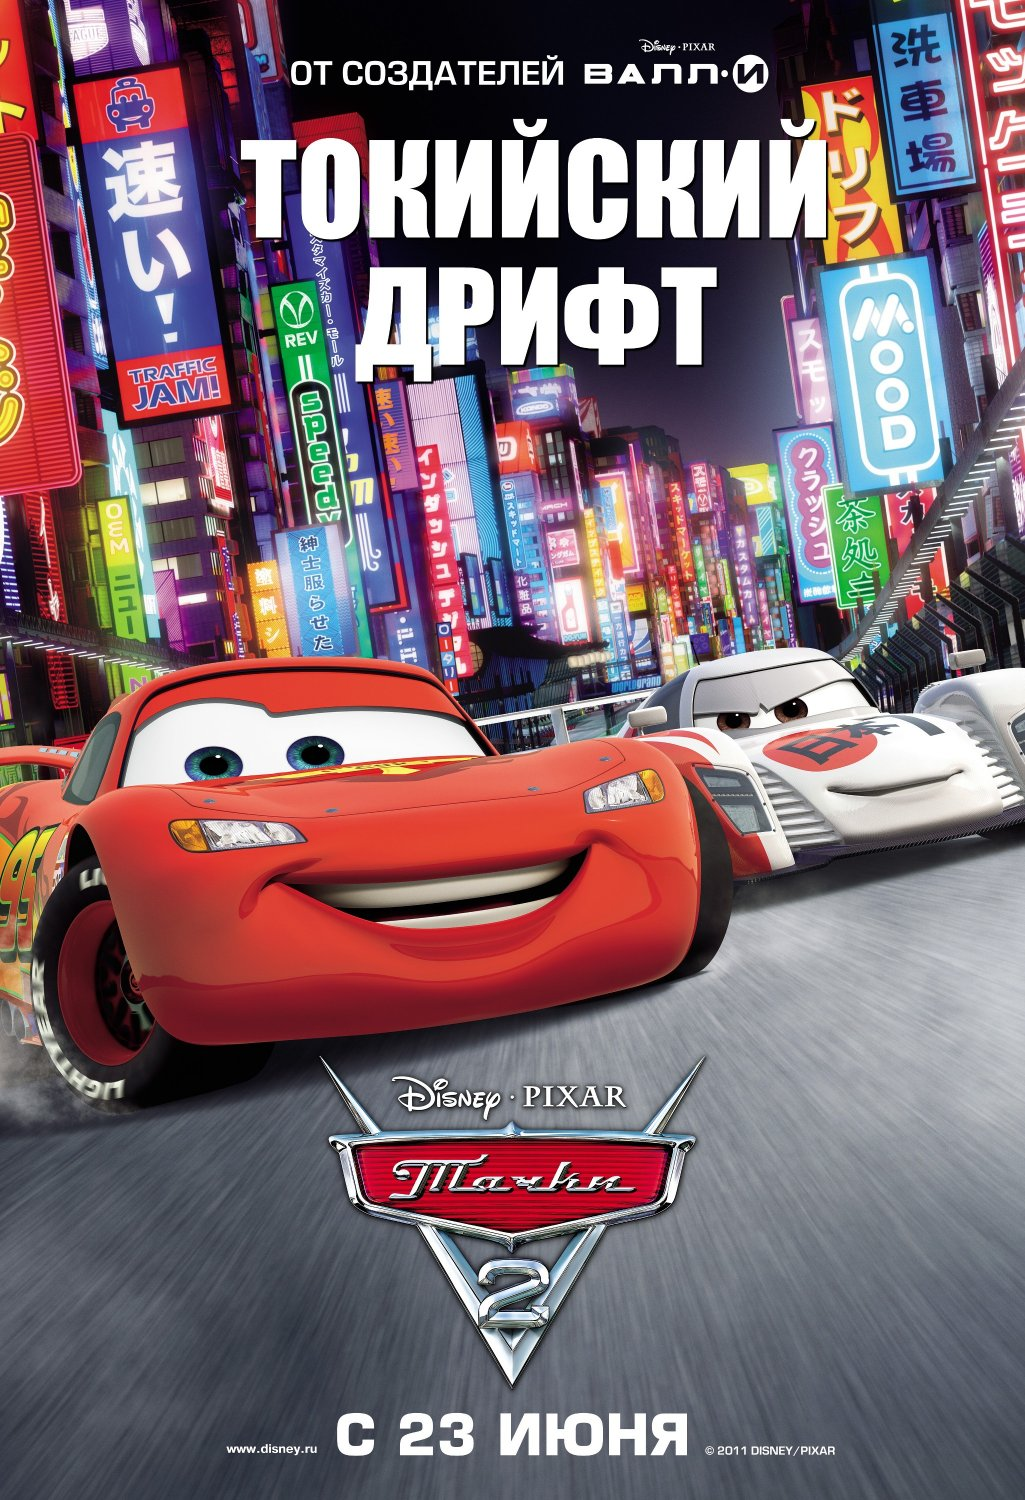 cars poster pixar russian disney posters movie japan seven movies soundtrack 2006 update cars2 pixartimes unveiled games artwork trailer traileraddict